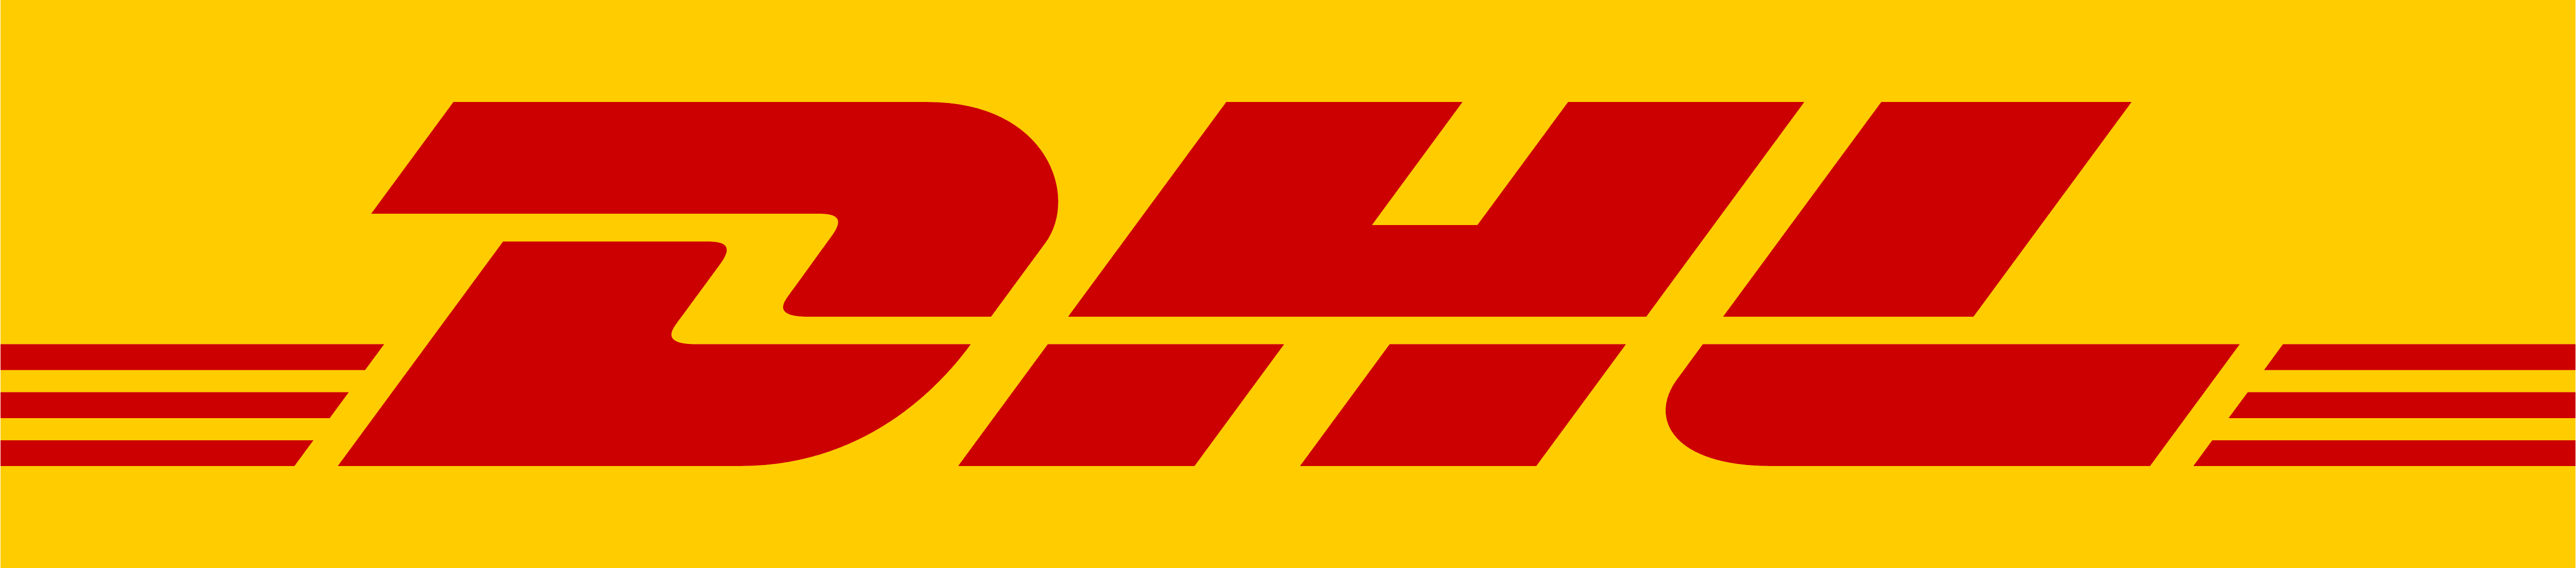 DHL – Logos Download